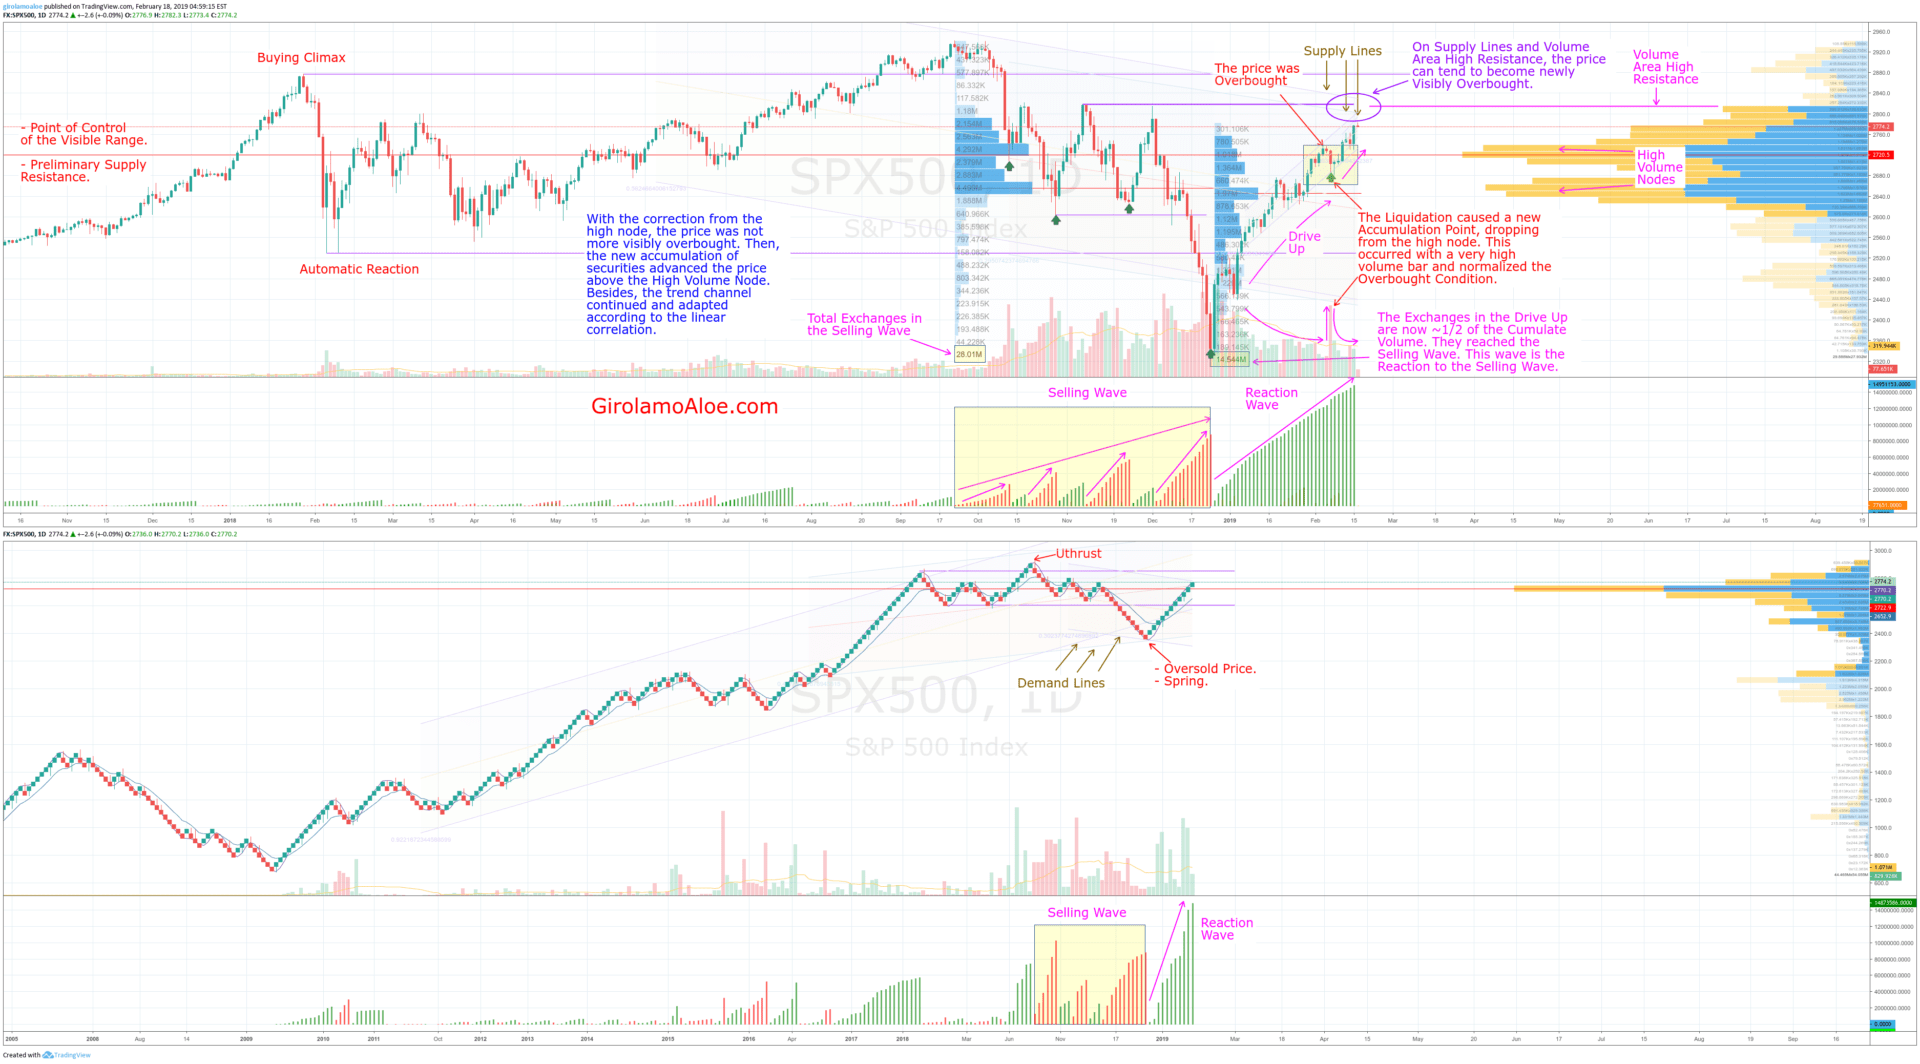 V240 – SPX500 – Decreased Overbought Condition and Exchanges in Selling and Reaction Waves